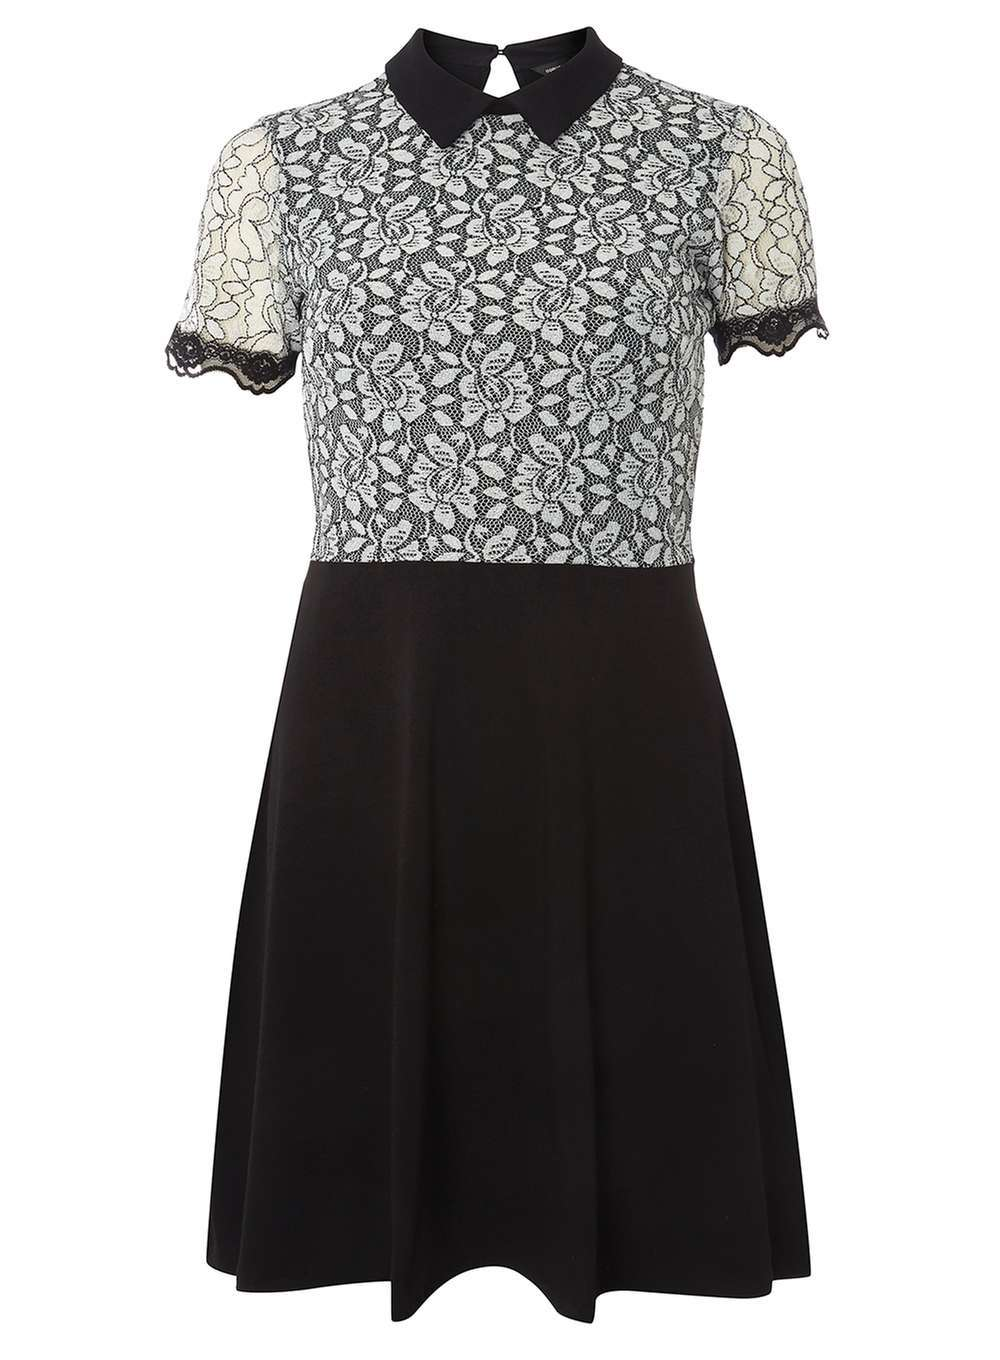 Womens Black And Ivory Lace Collar Dress Black - secondary colour: ivory/cream; predominant colour: black; occasions: evening; length: just above the knee; fit: fitted at waist & bust; style: fit & flare; fibres: cotton - stretch; neckline: no opening/shirt collar/peter pan; back detail: keyhole/peephole detail at back; sleeve length: short sleeve; sleeve style: standard; pattern type: fabric; pattern: patterned/print; texture group: jersey - stretchy/drapey; embellishment: lace; season: a/w 2016; wardrobe: event